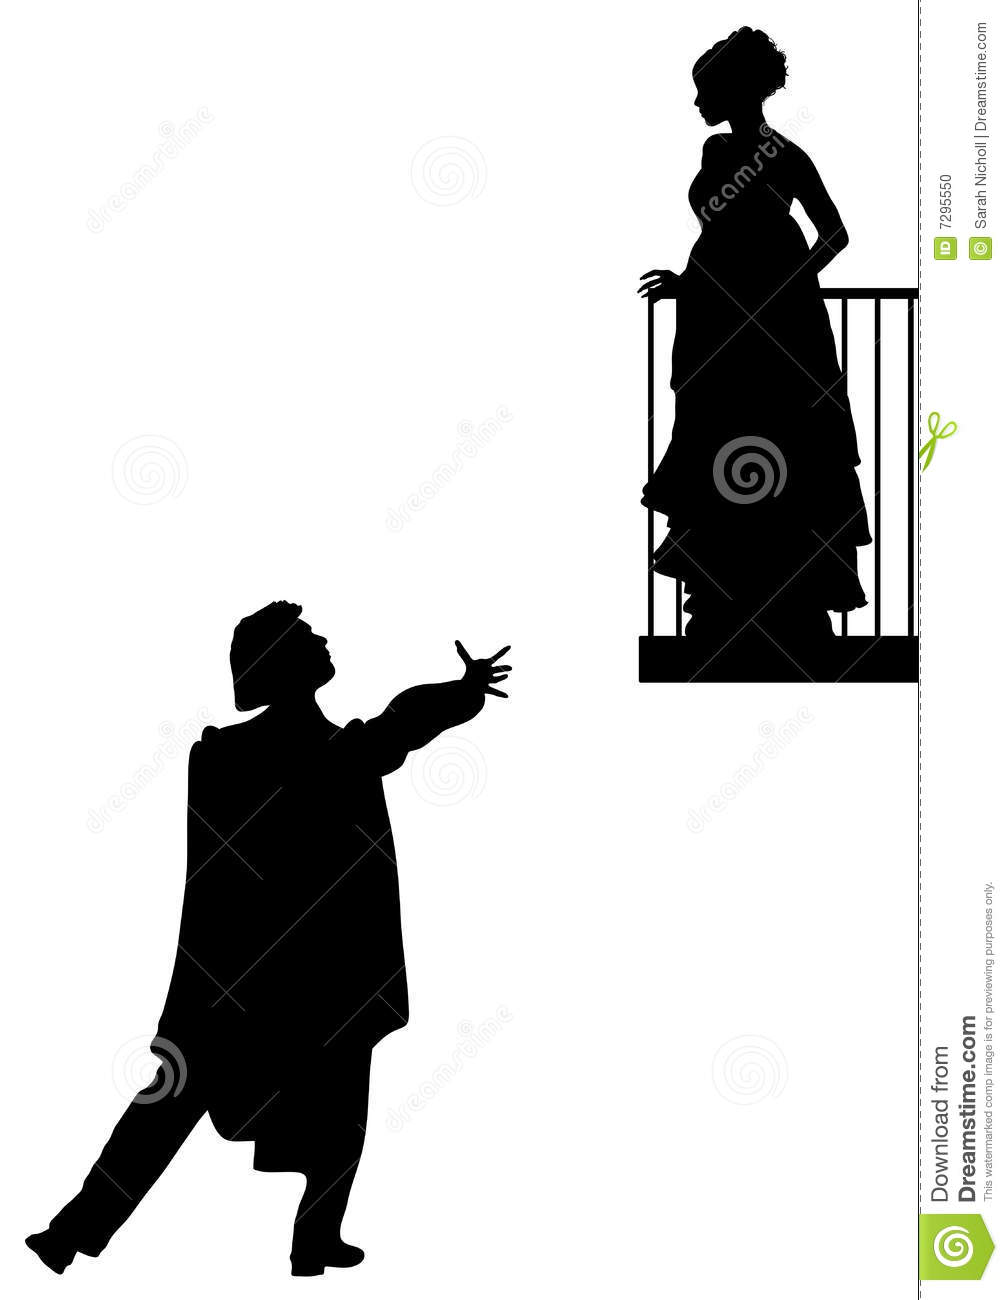 Romeo And Juliet Stock Photo - Image: 7295550